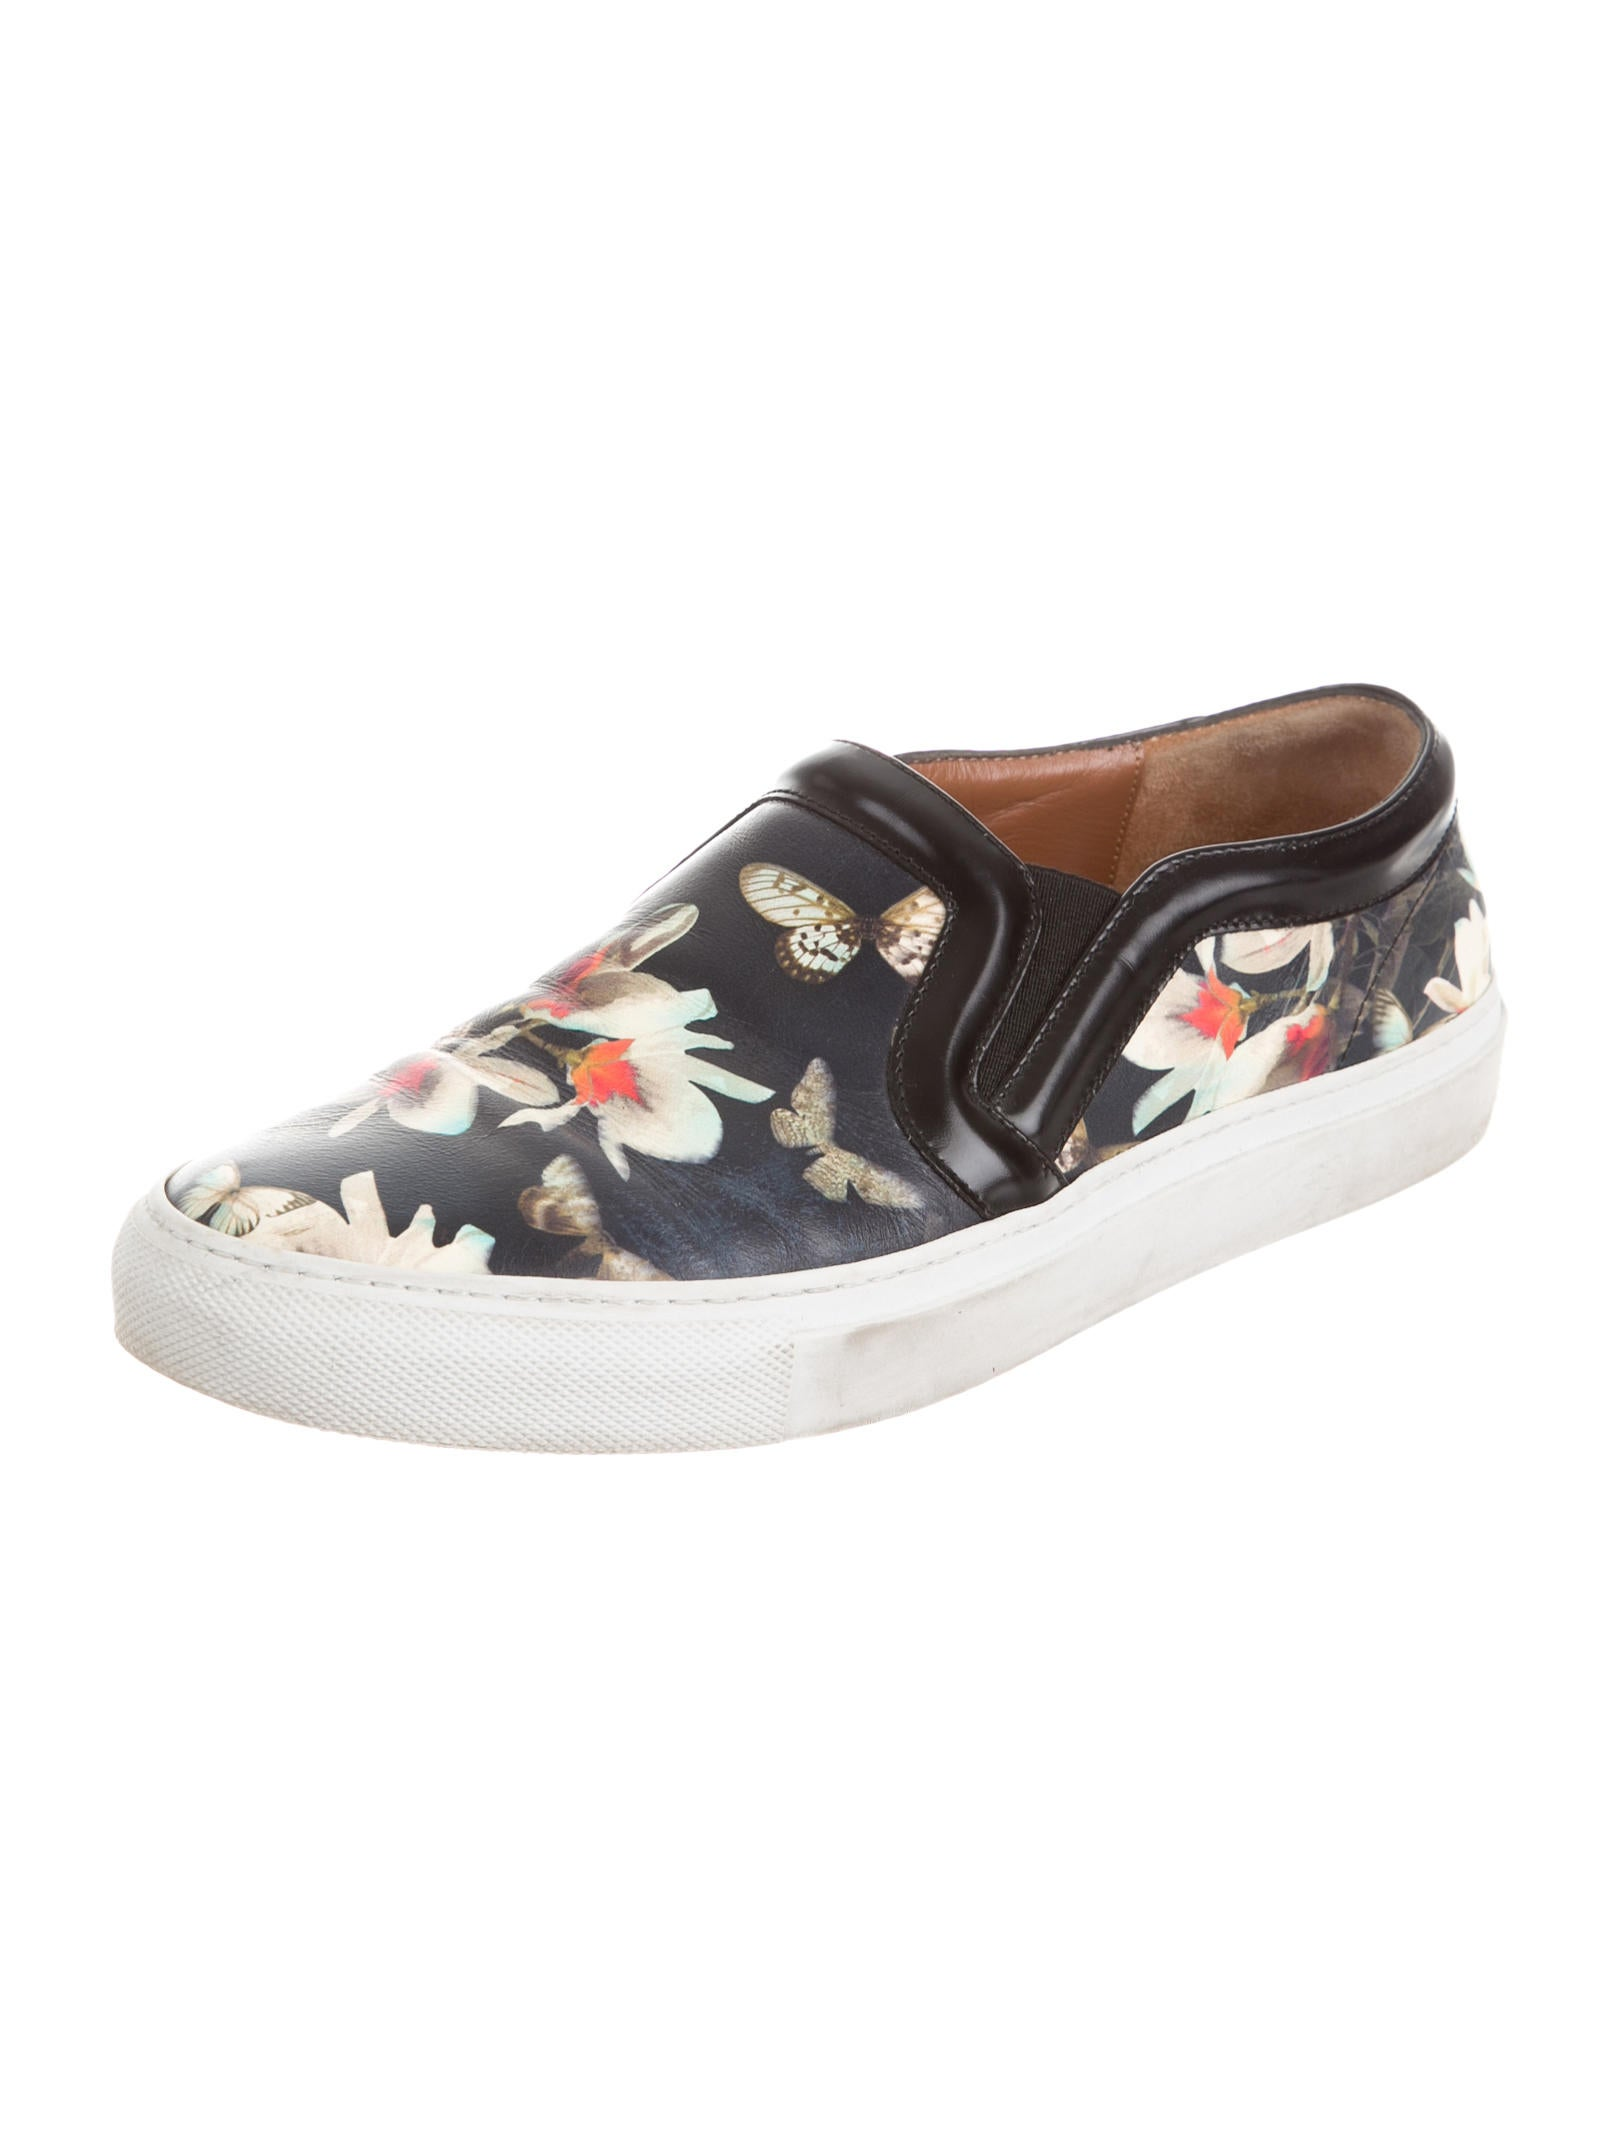 givenchy sneakers shoes giv25510 the realreal